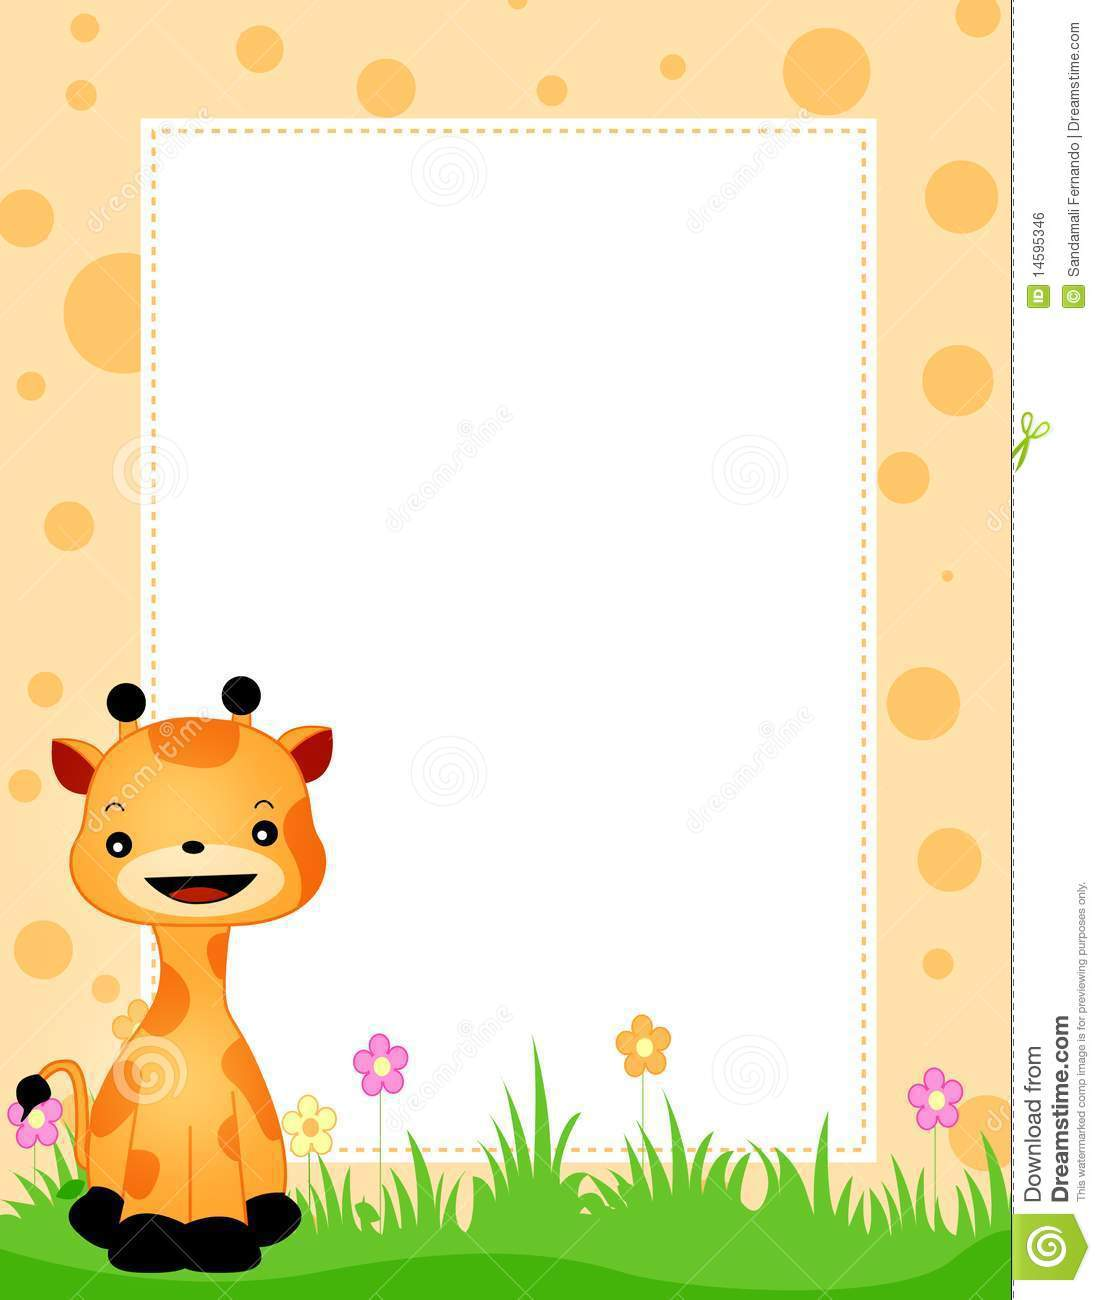 Baby Jungle Borders Clipart - Clipart Suggest